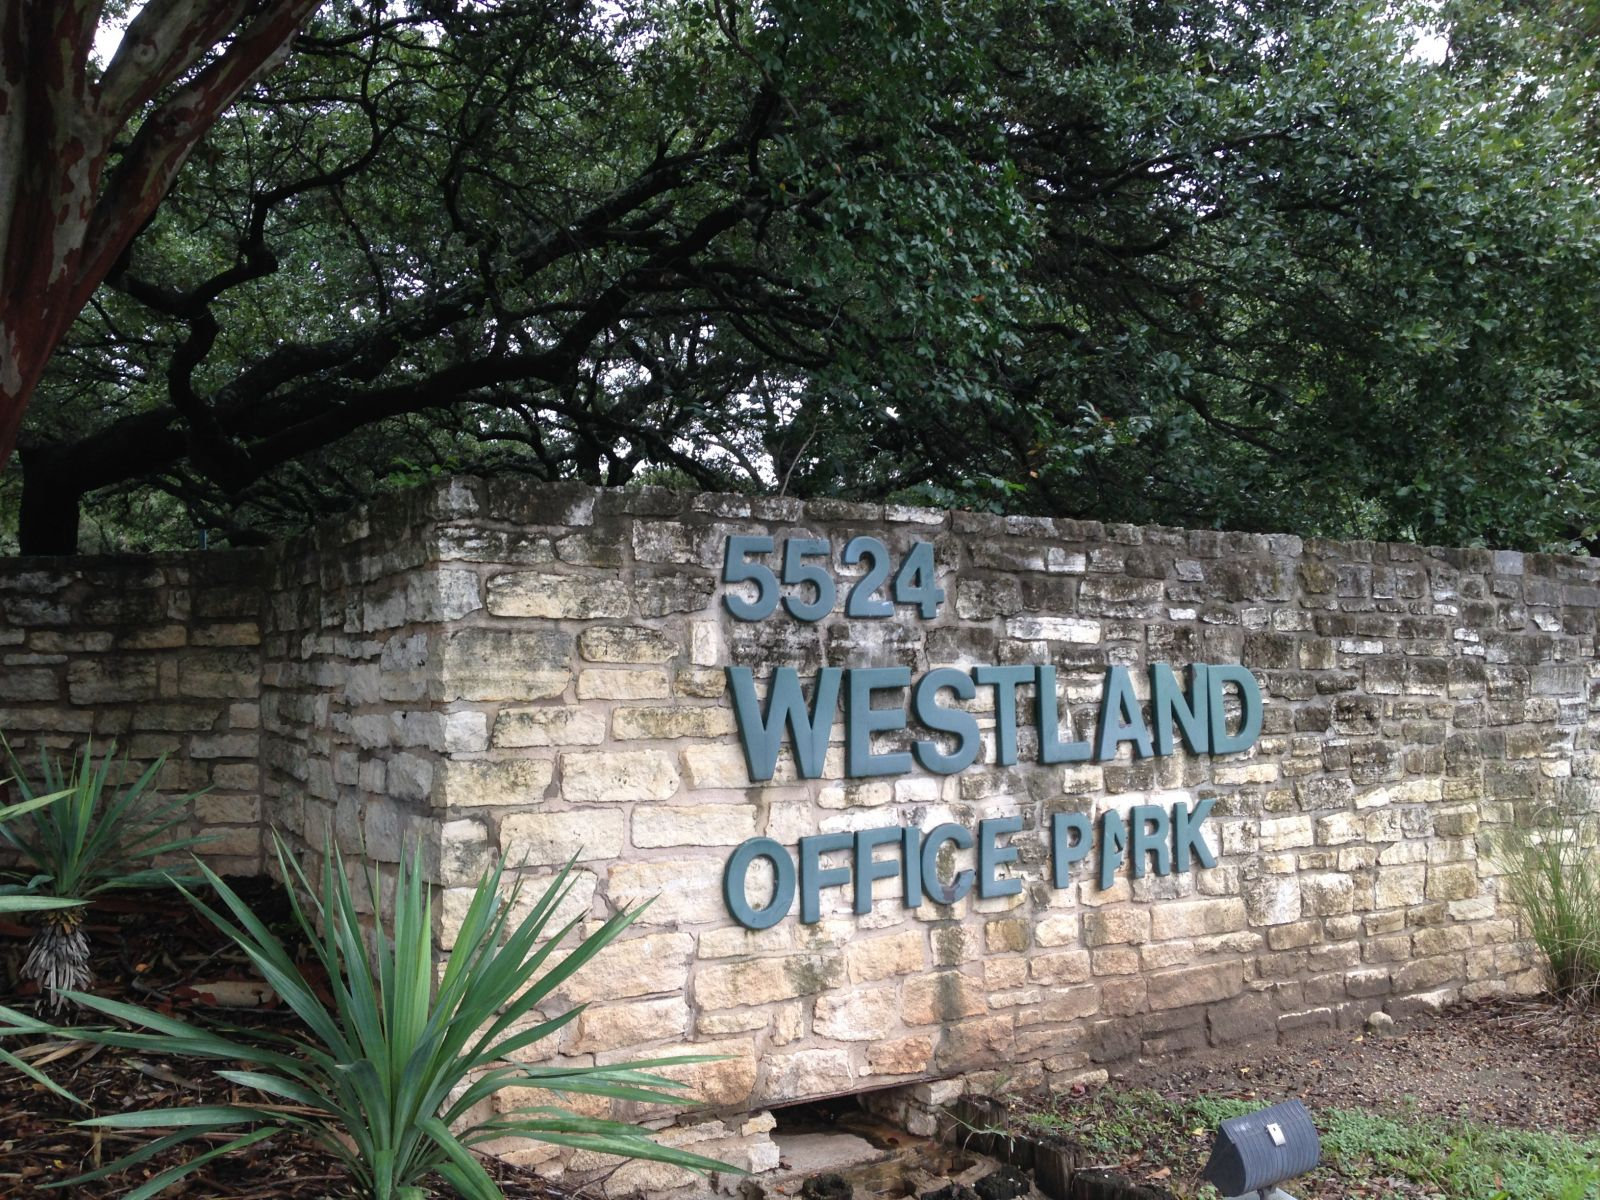 5524 Bee Cave Road, Westland Office Park